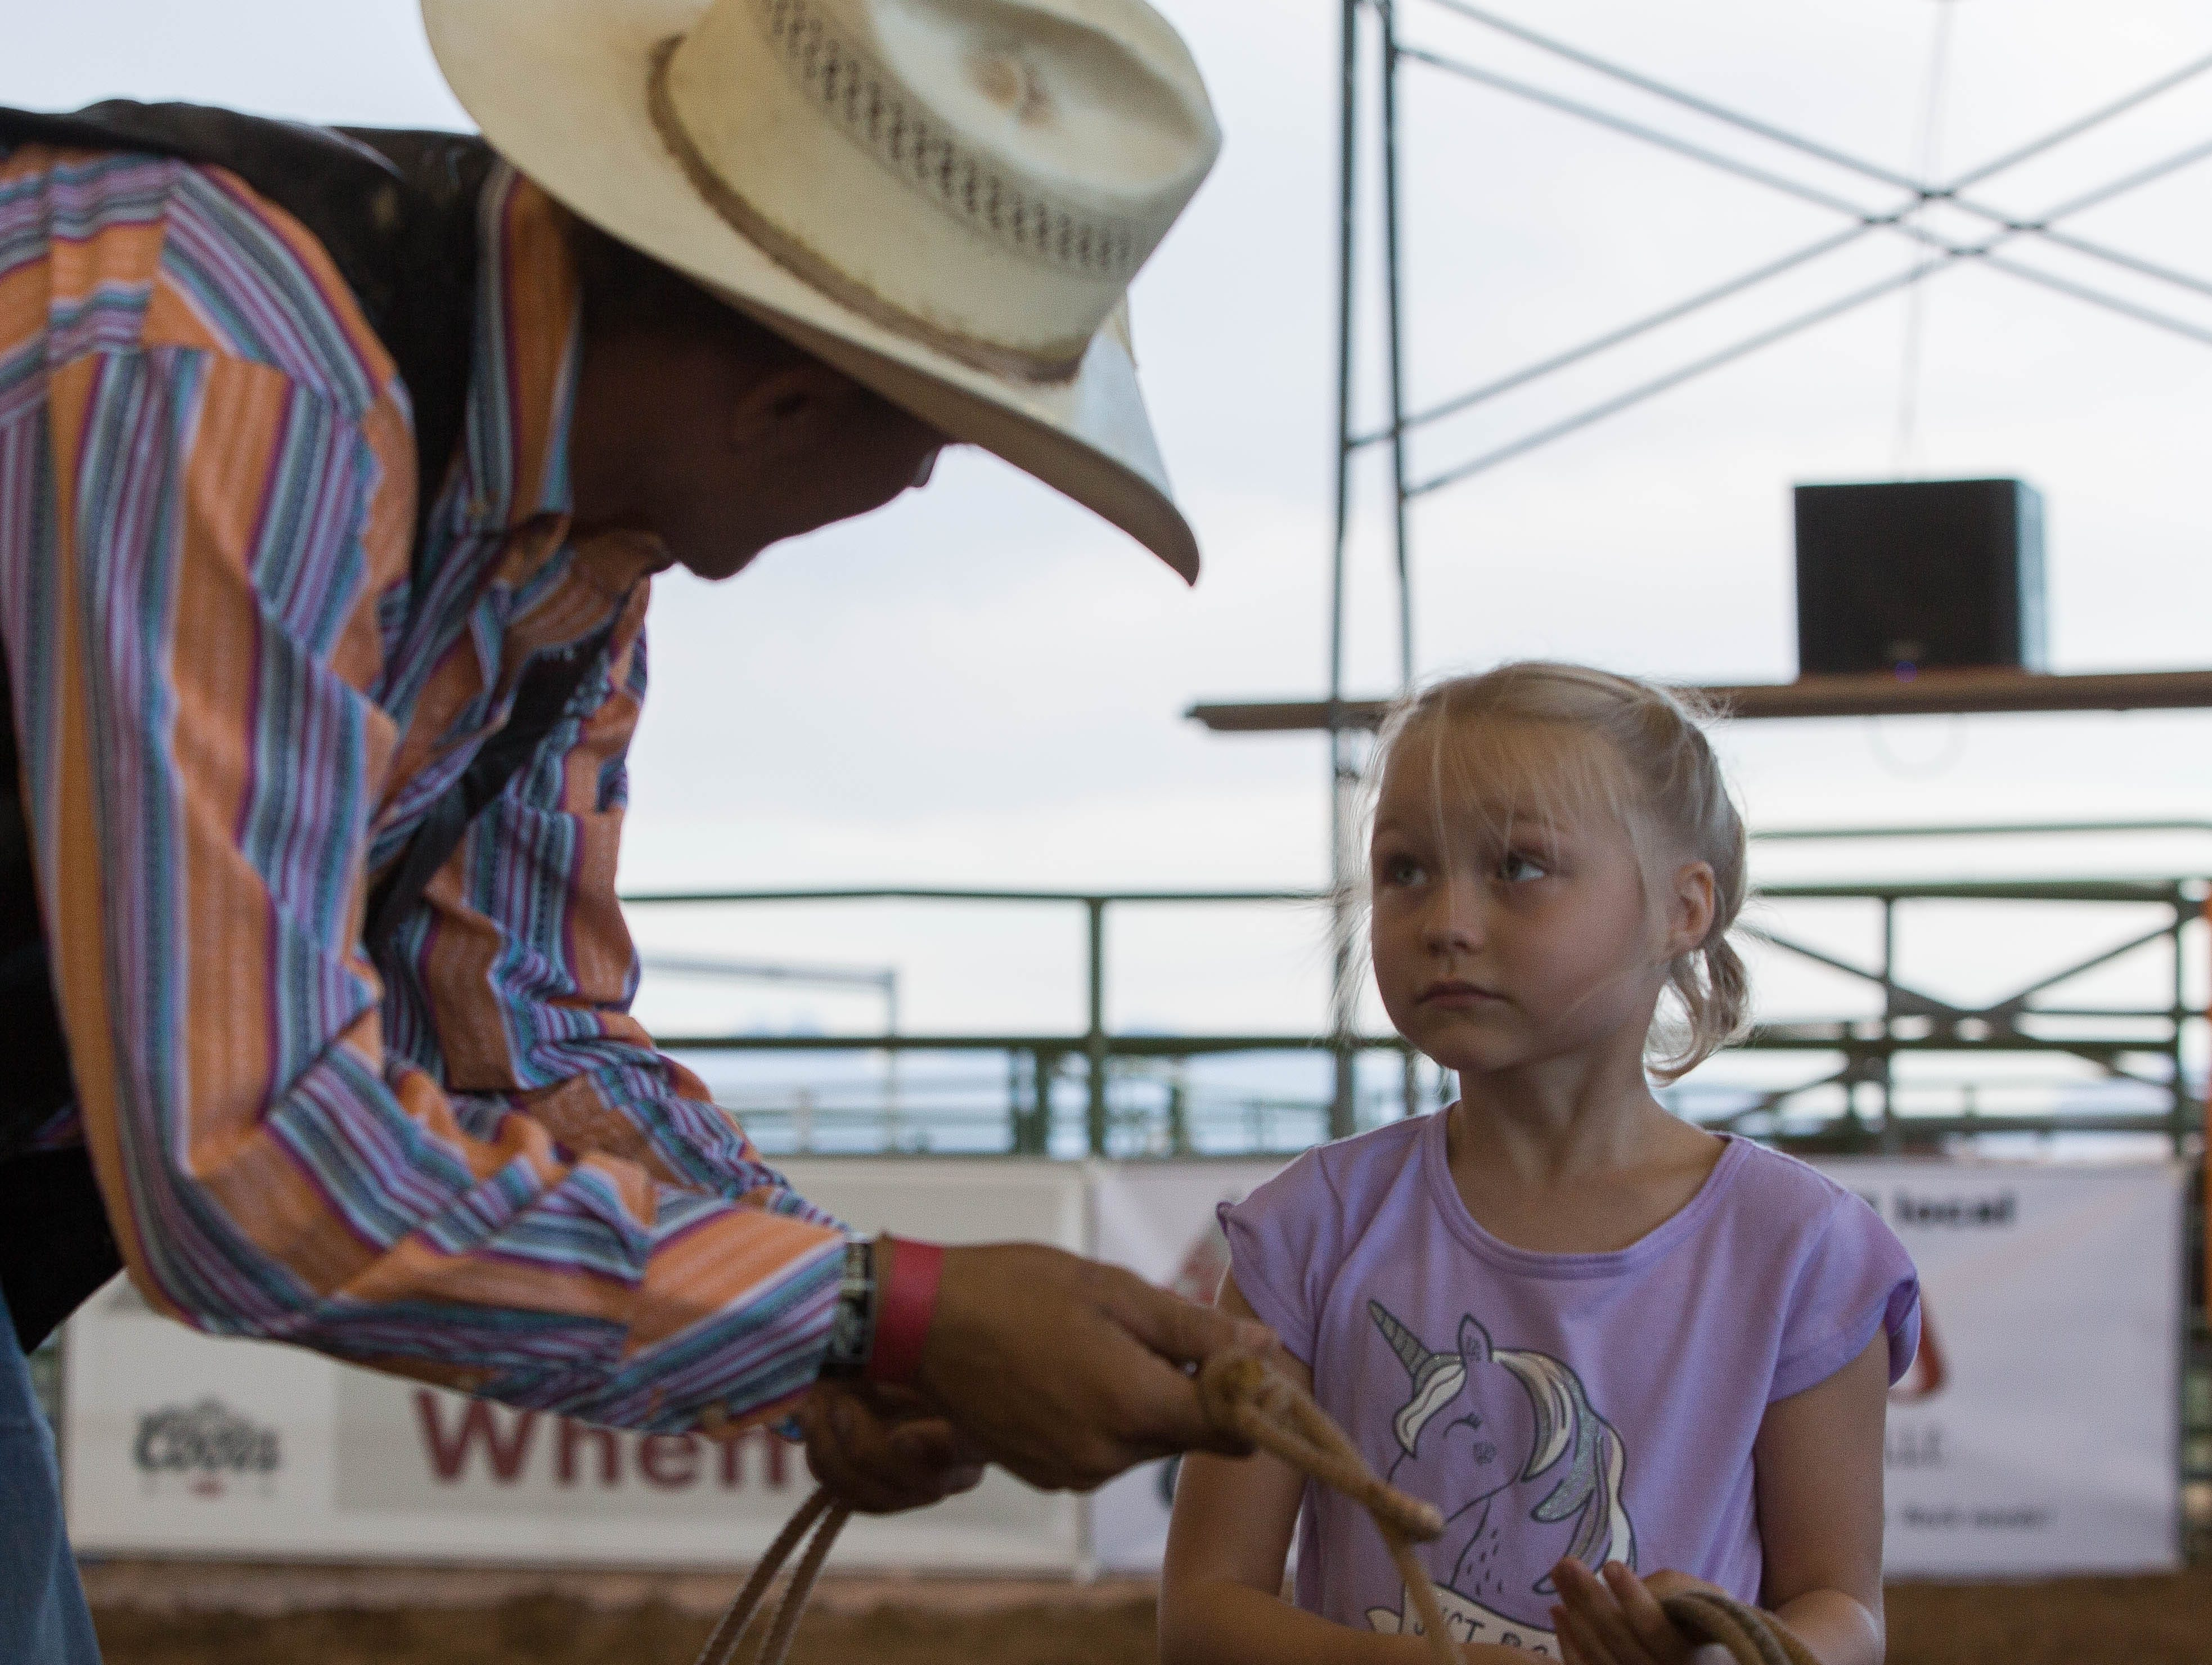 Zoey Froberg, 6, gets a few tips for throwing a lasso from Blaine Pinochi, a member of the New Mexico State Univeristy rodeo team, in the Kids and Fan Zone of the Southern New Mexico State Fair and Rodeo, Wednesday, Sept. 26, 2018.